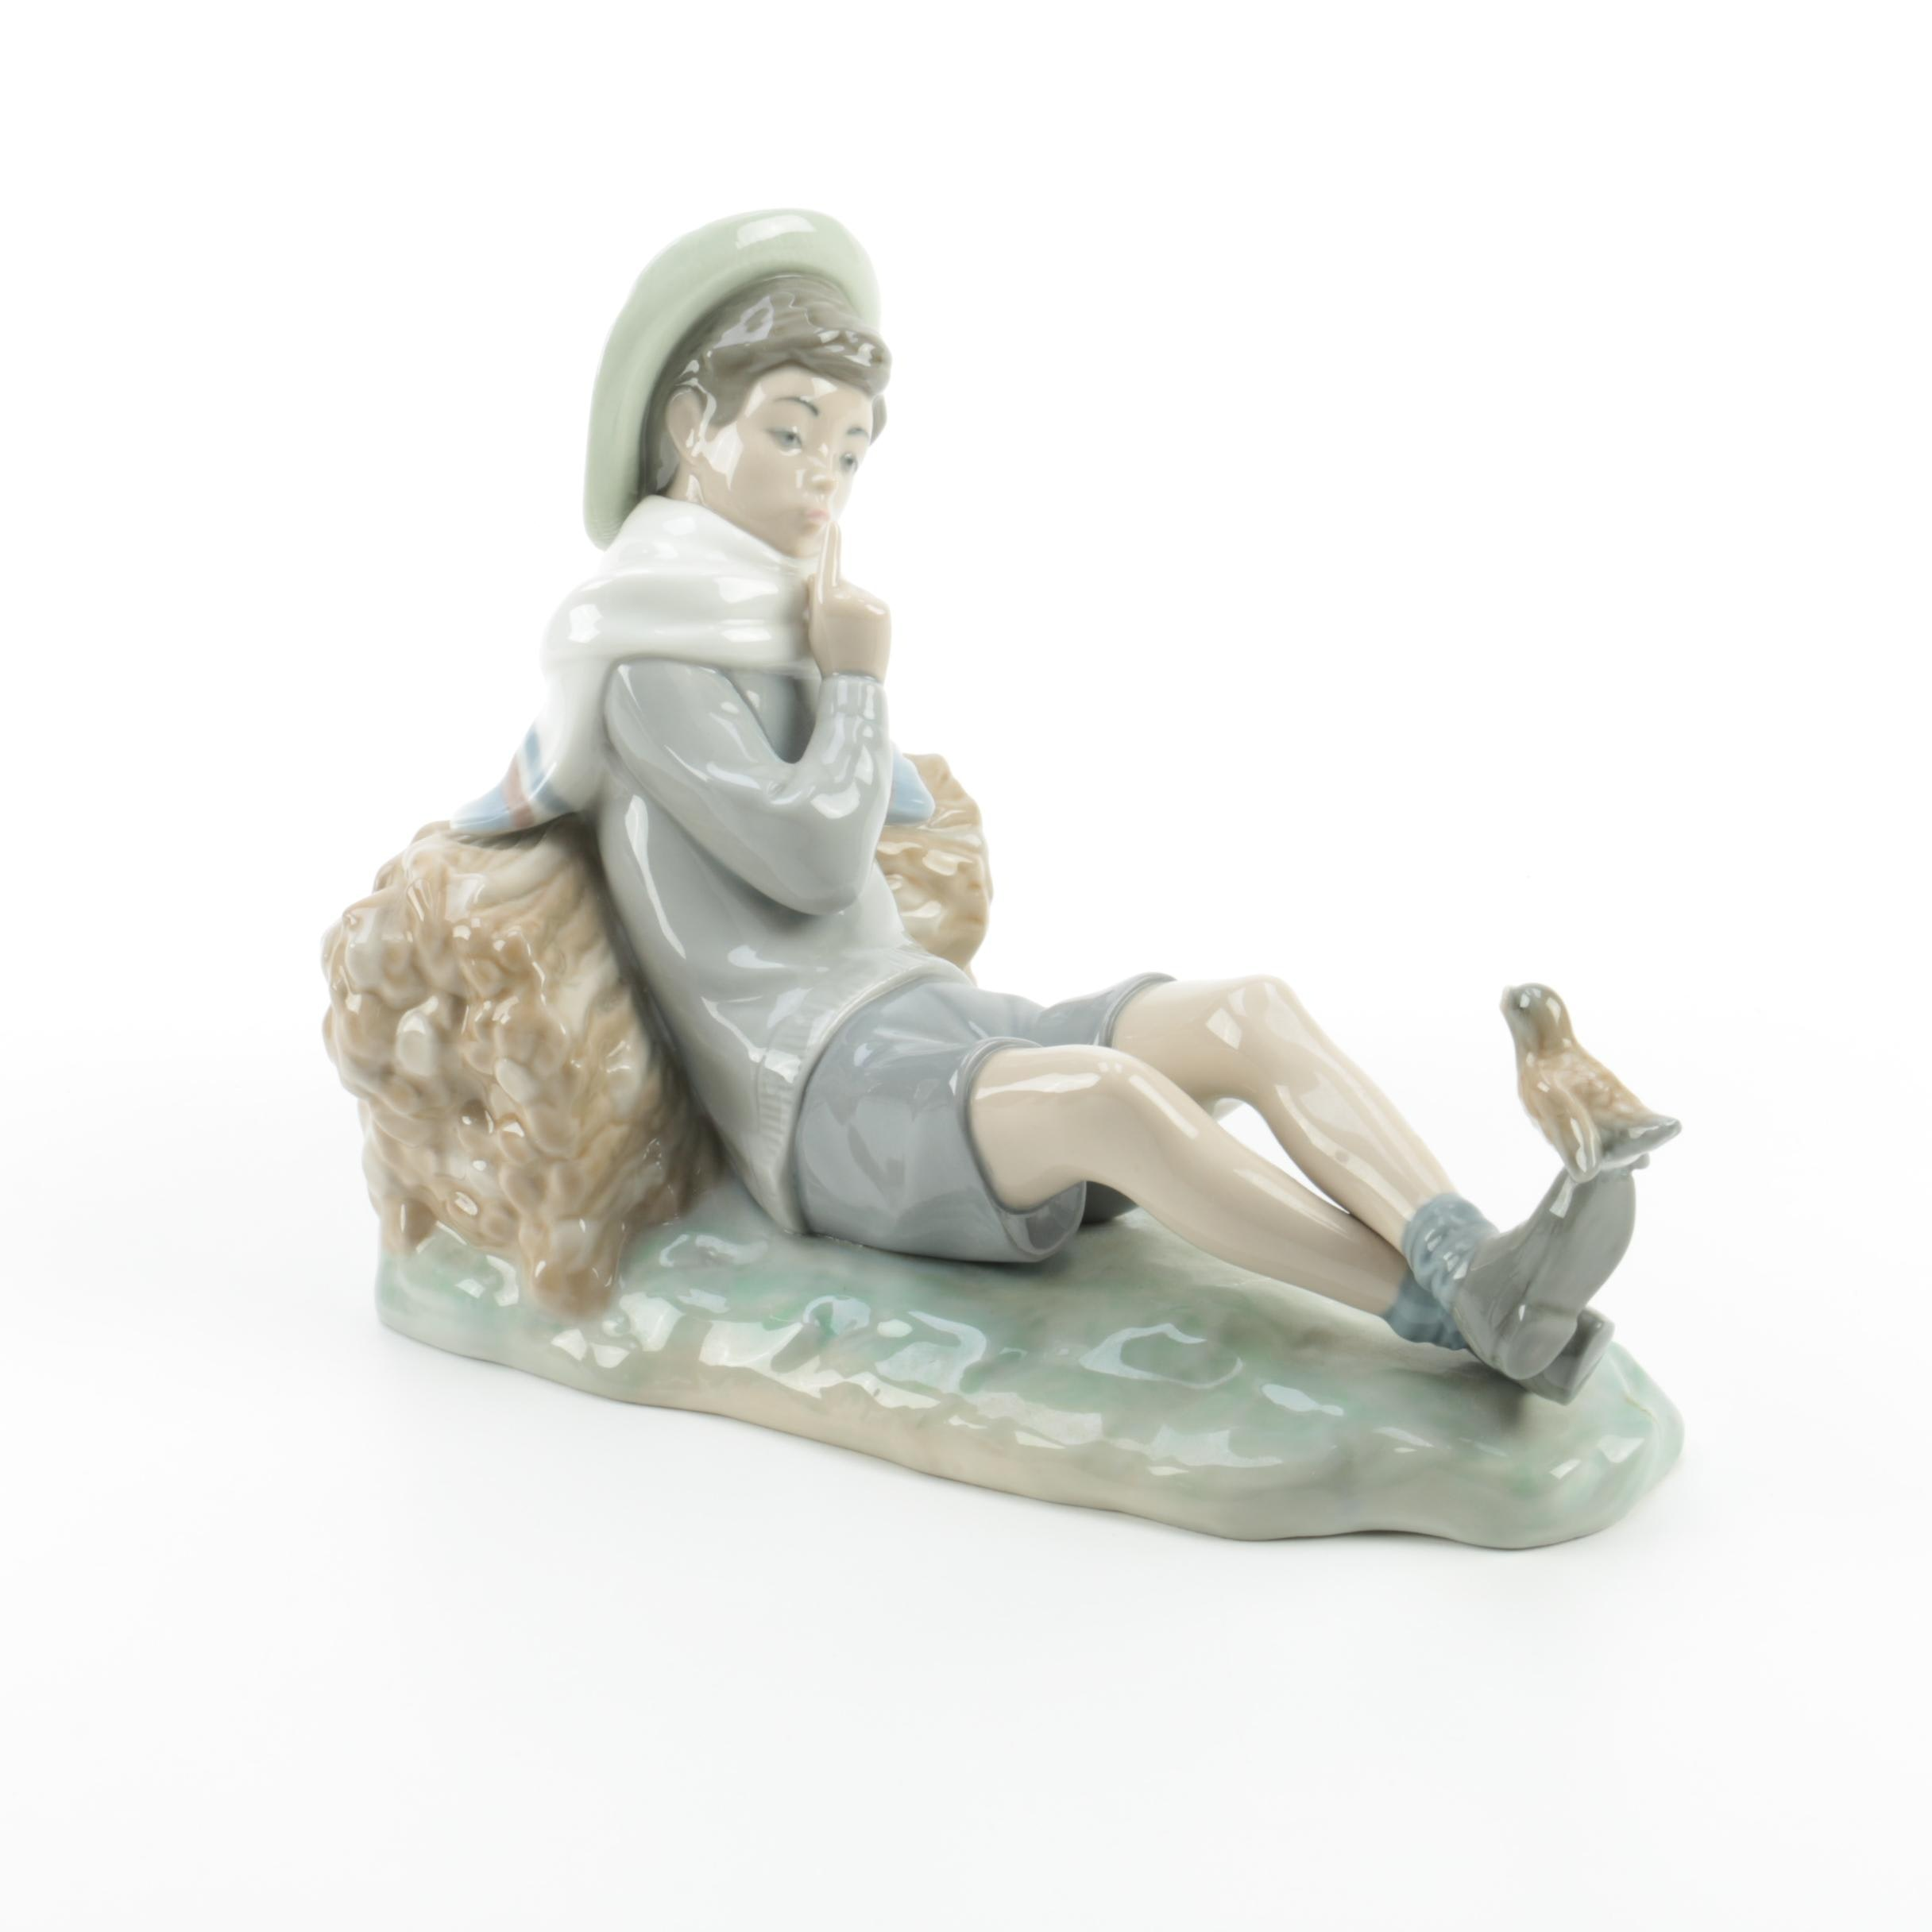 "Lladro ""Shepherd Boy with Bird"" Figurine"